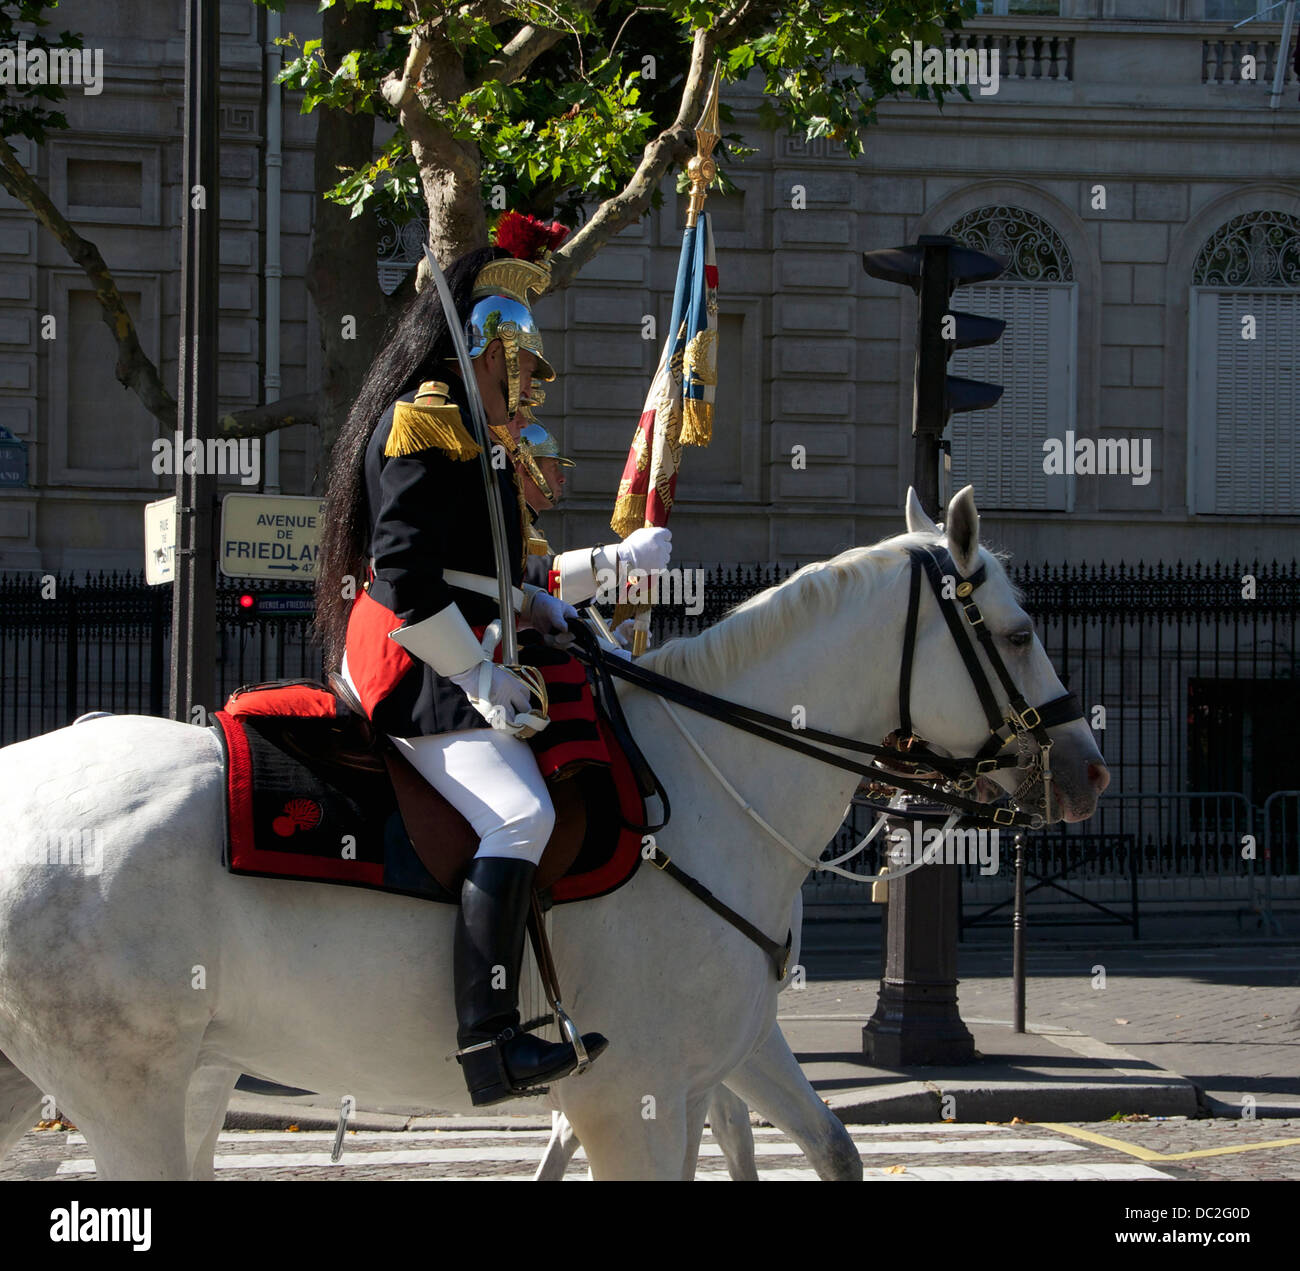 The standard of the cavalry regiment of the Garde Républicaine and his guard. - Stock Image